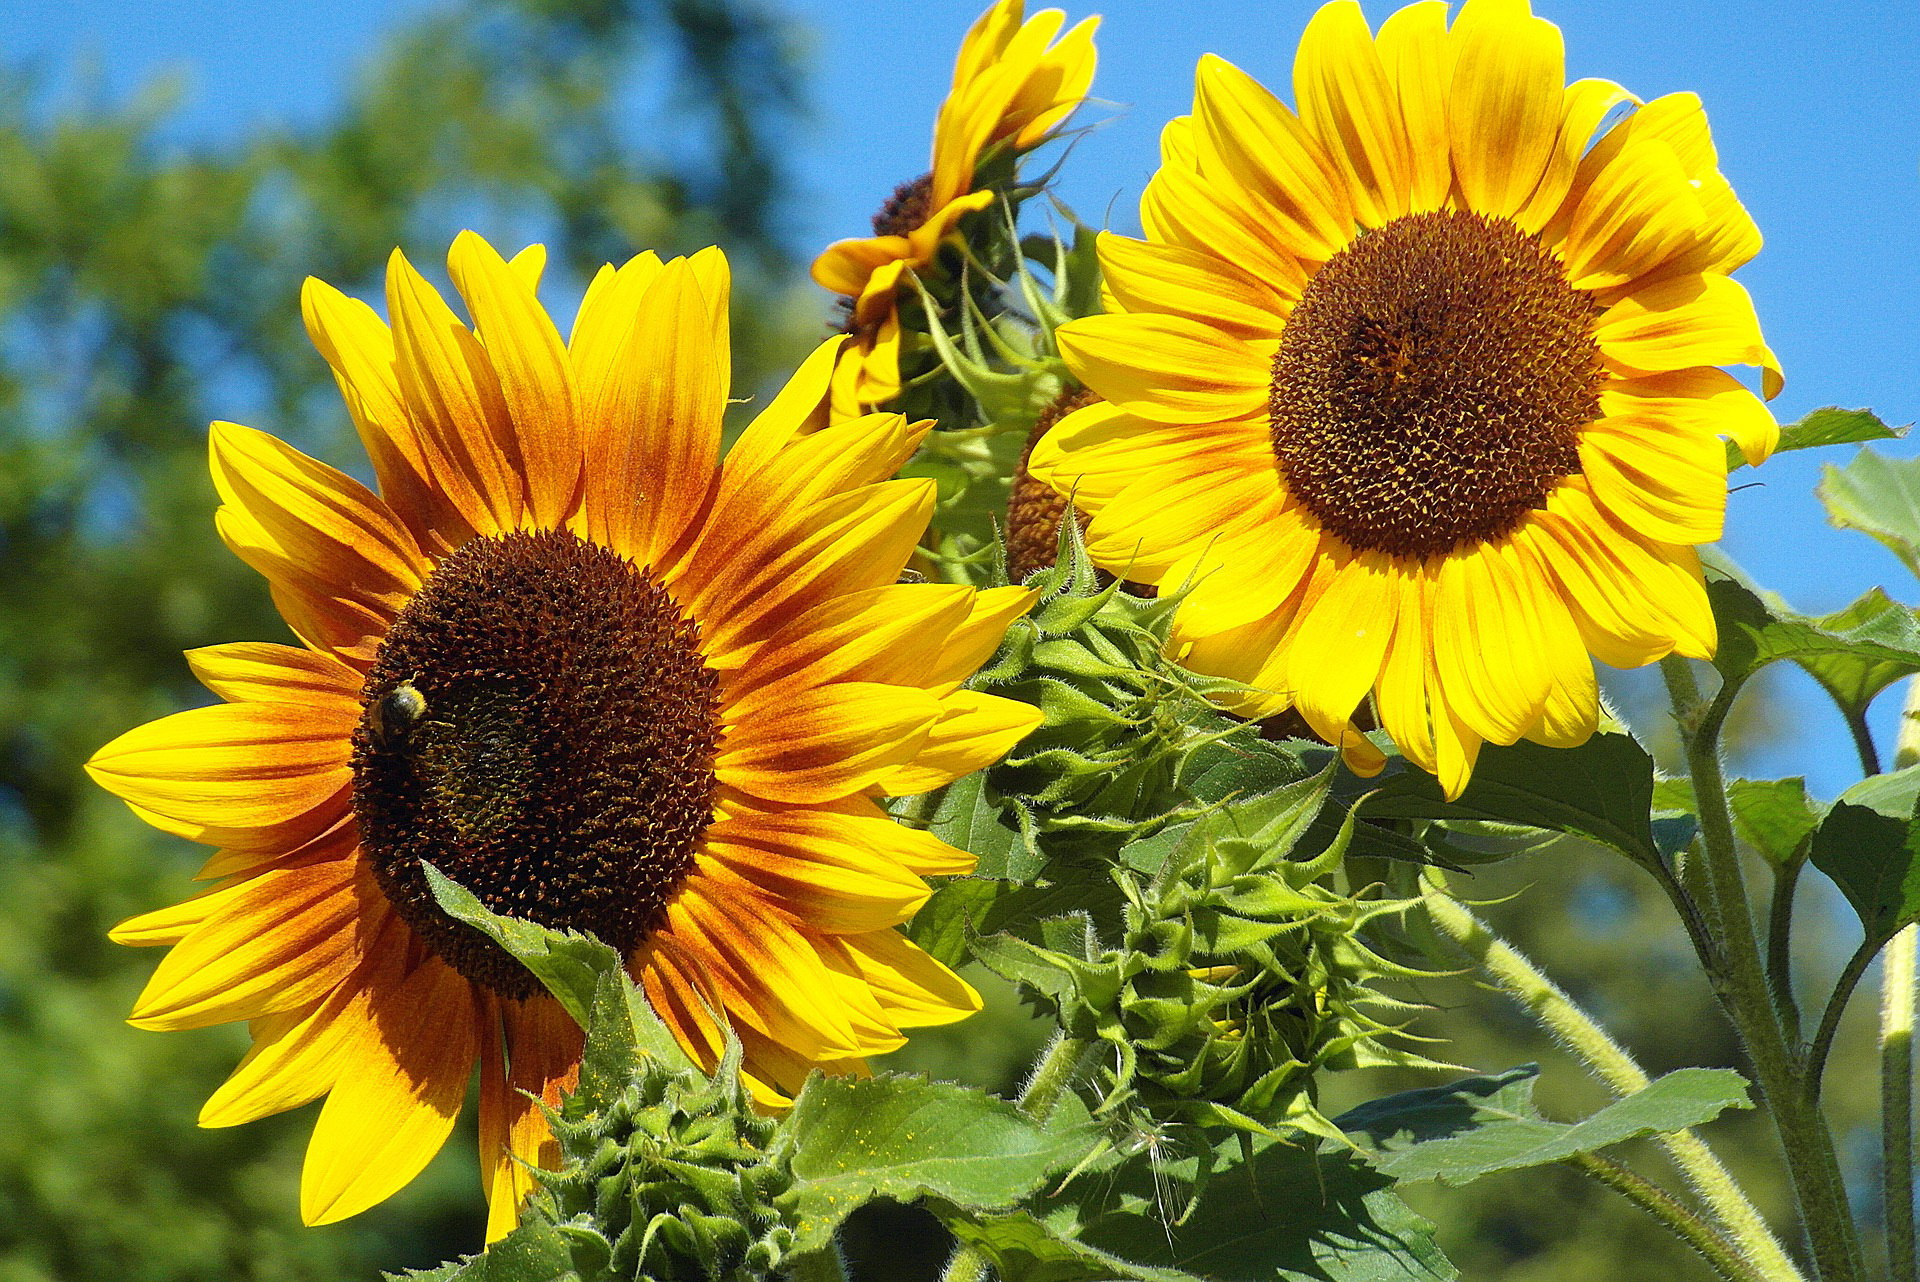 Ukraine exported a record amount of sunflower oil by tankers